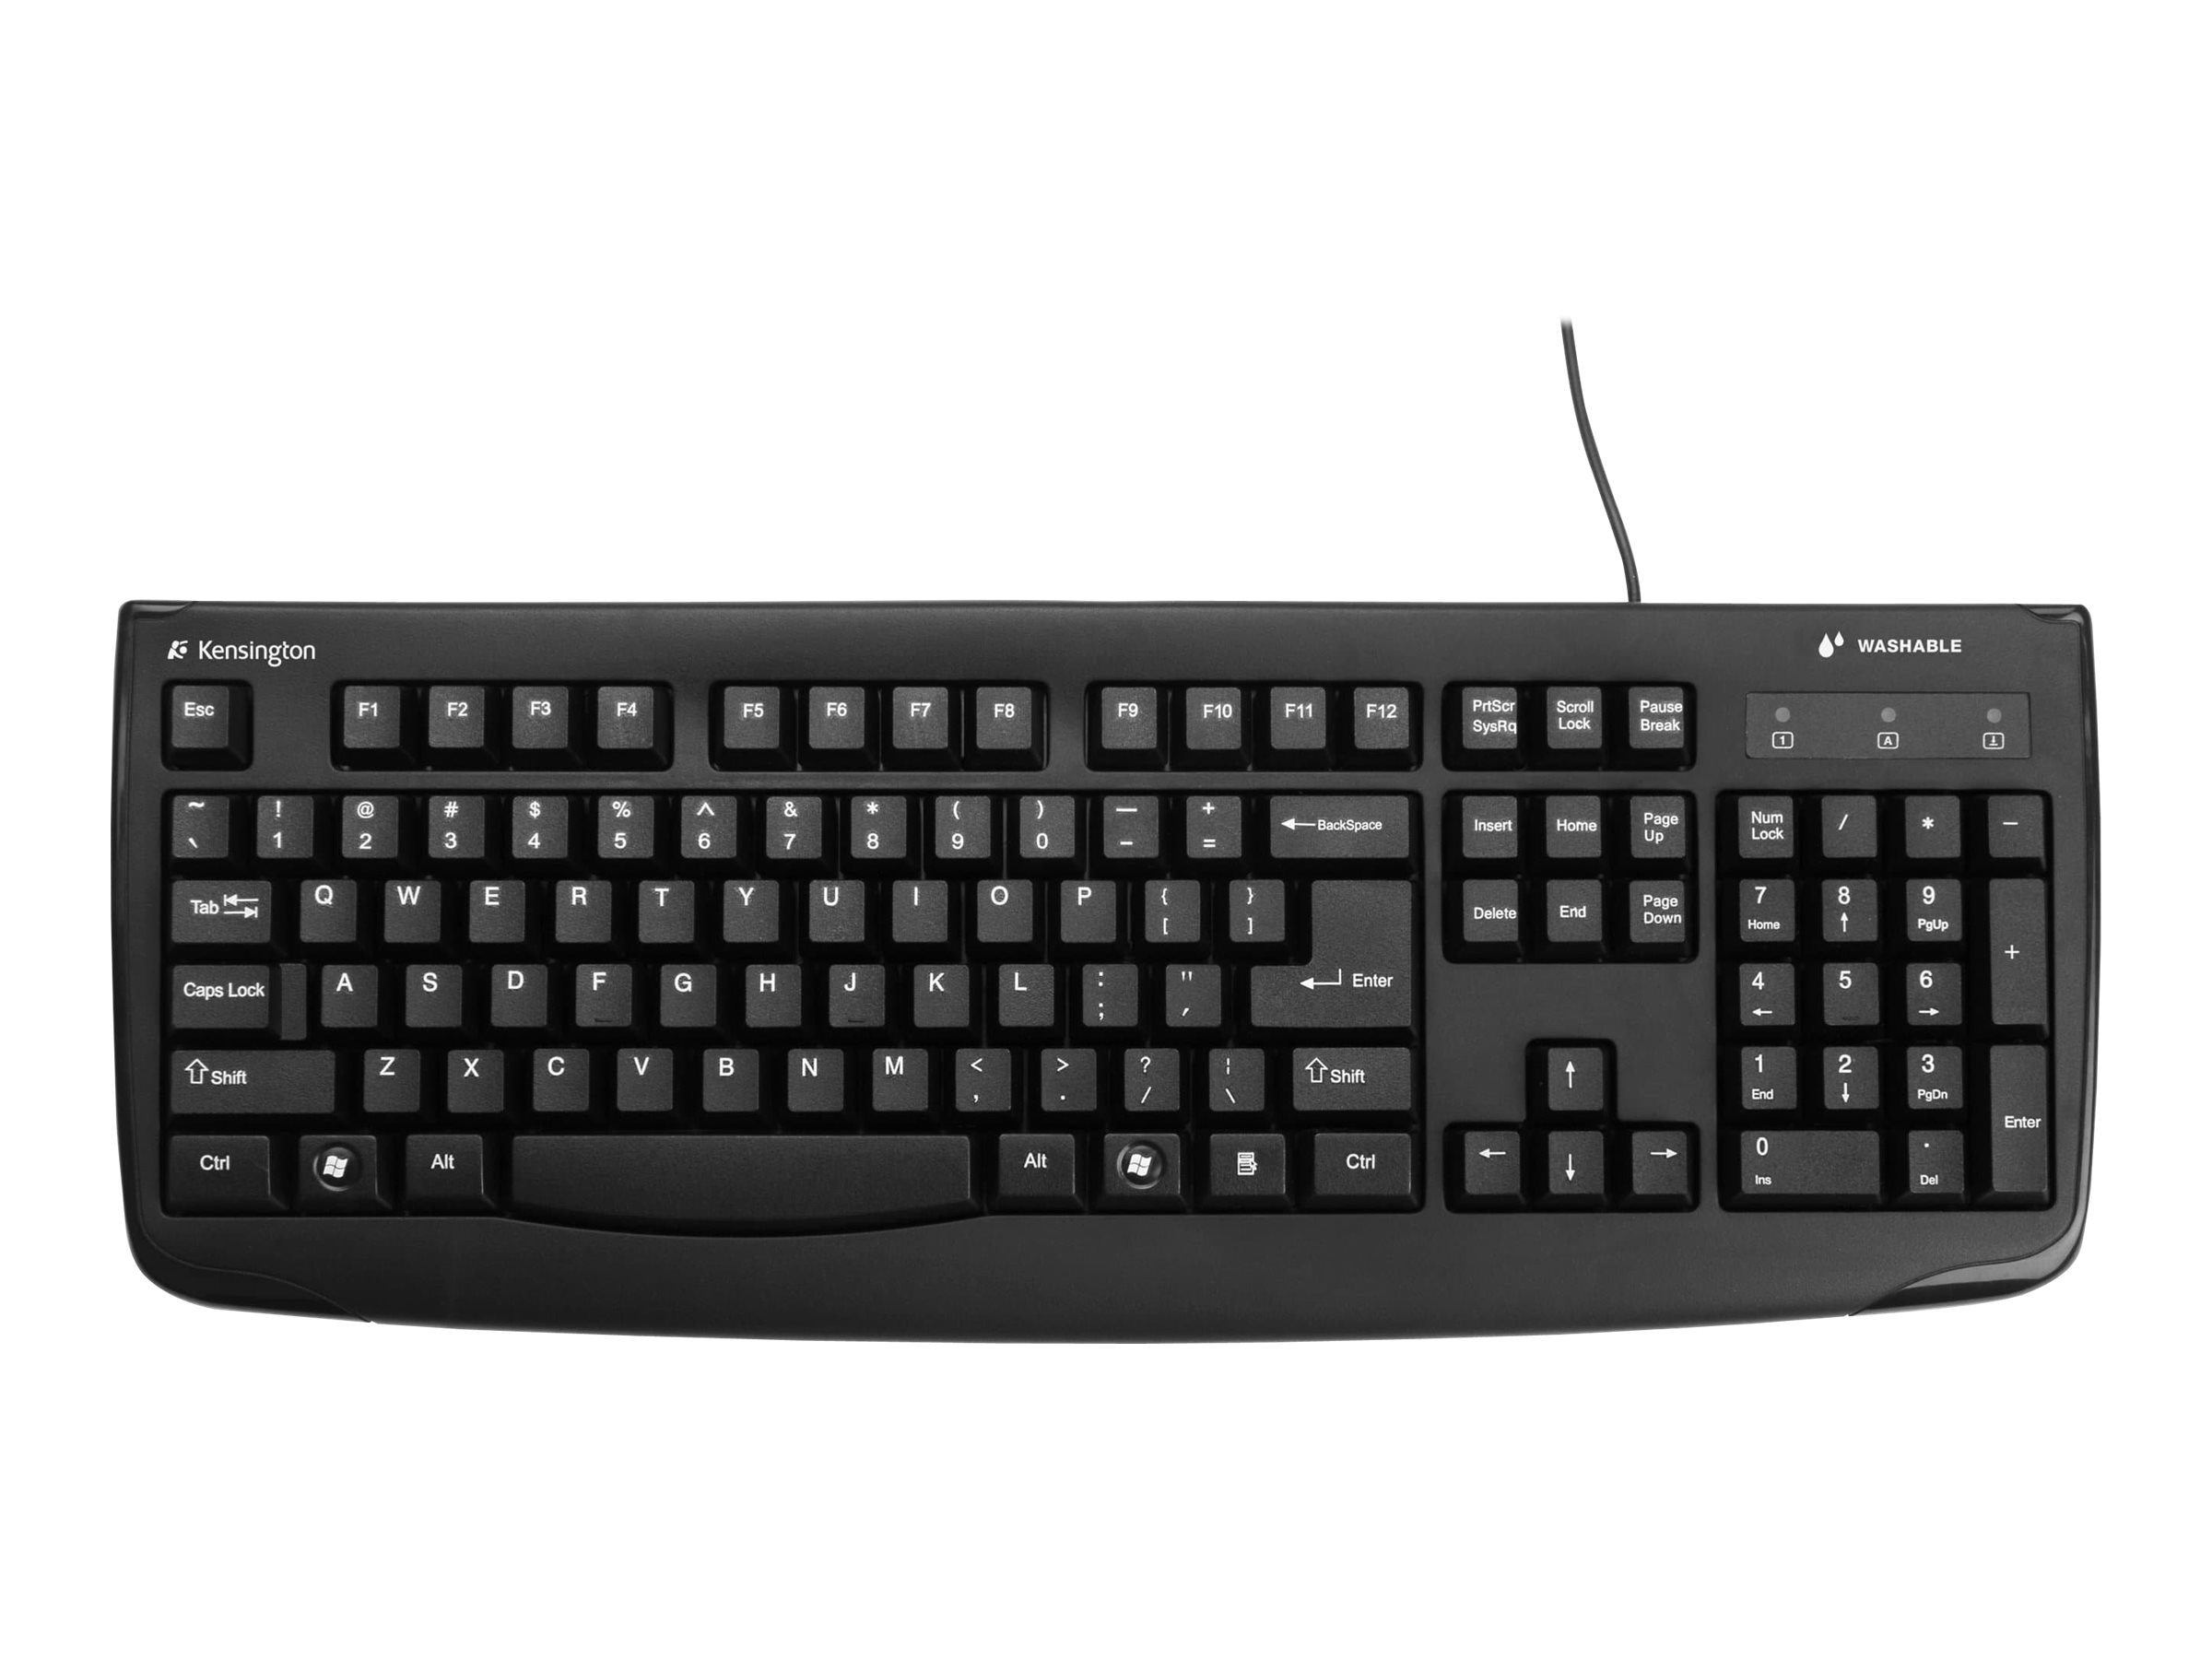 Kensington Pro Fit USB Washable Keyboard